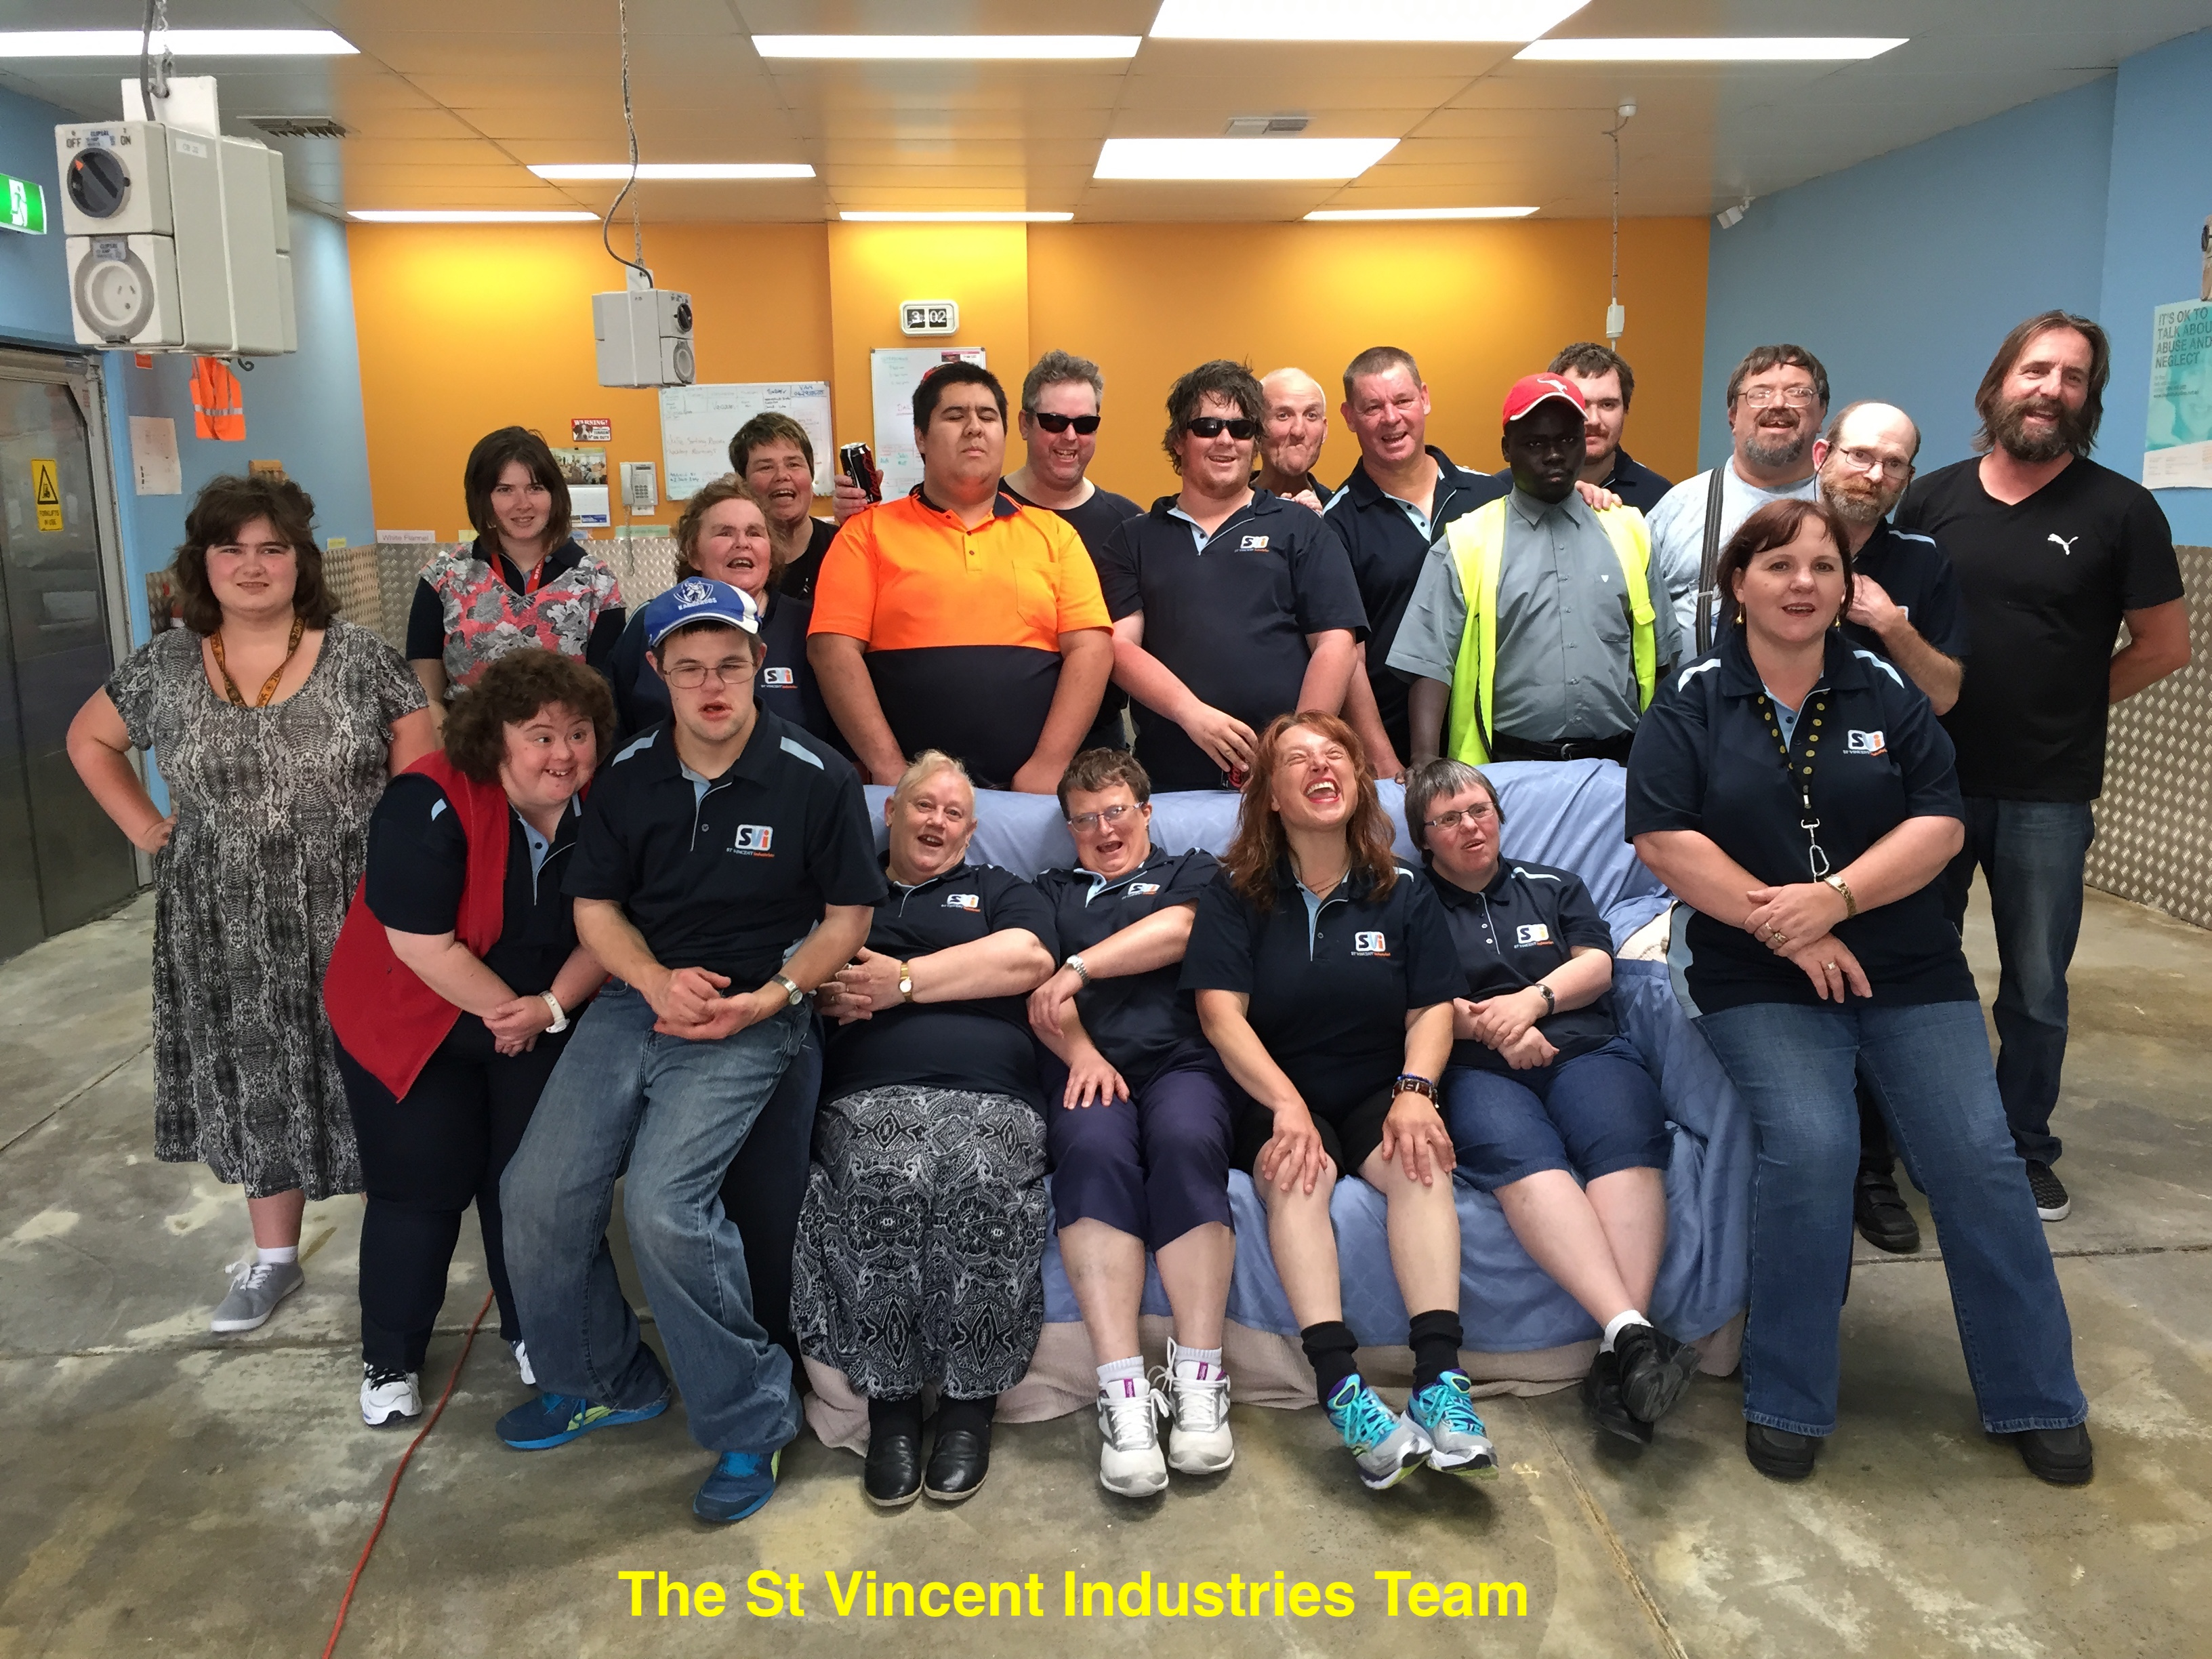 St Vincent Industries - group photo